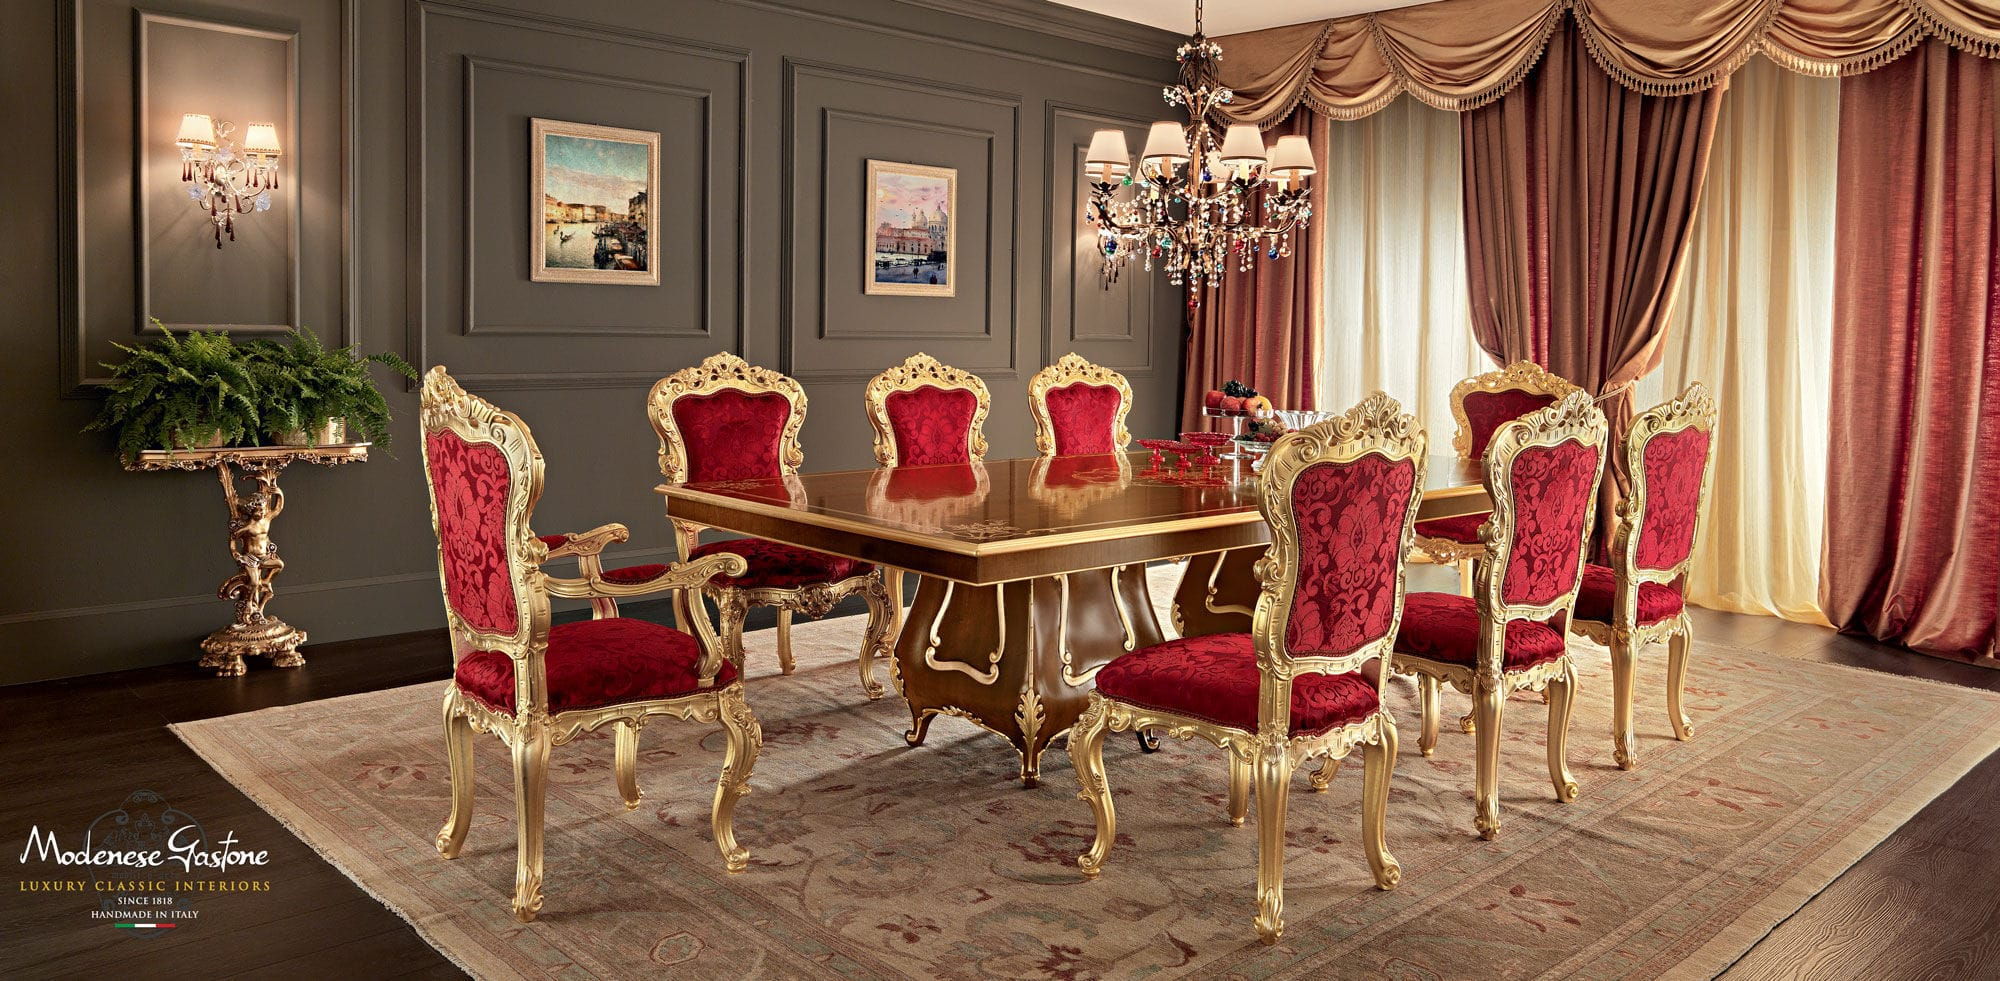 Classic Dining Table Wooden Rectangular Extending VILLA VENEZIA 11118 Modenese Gastone Luxury